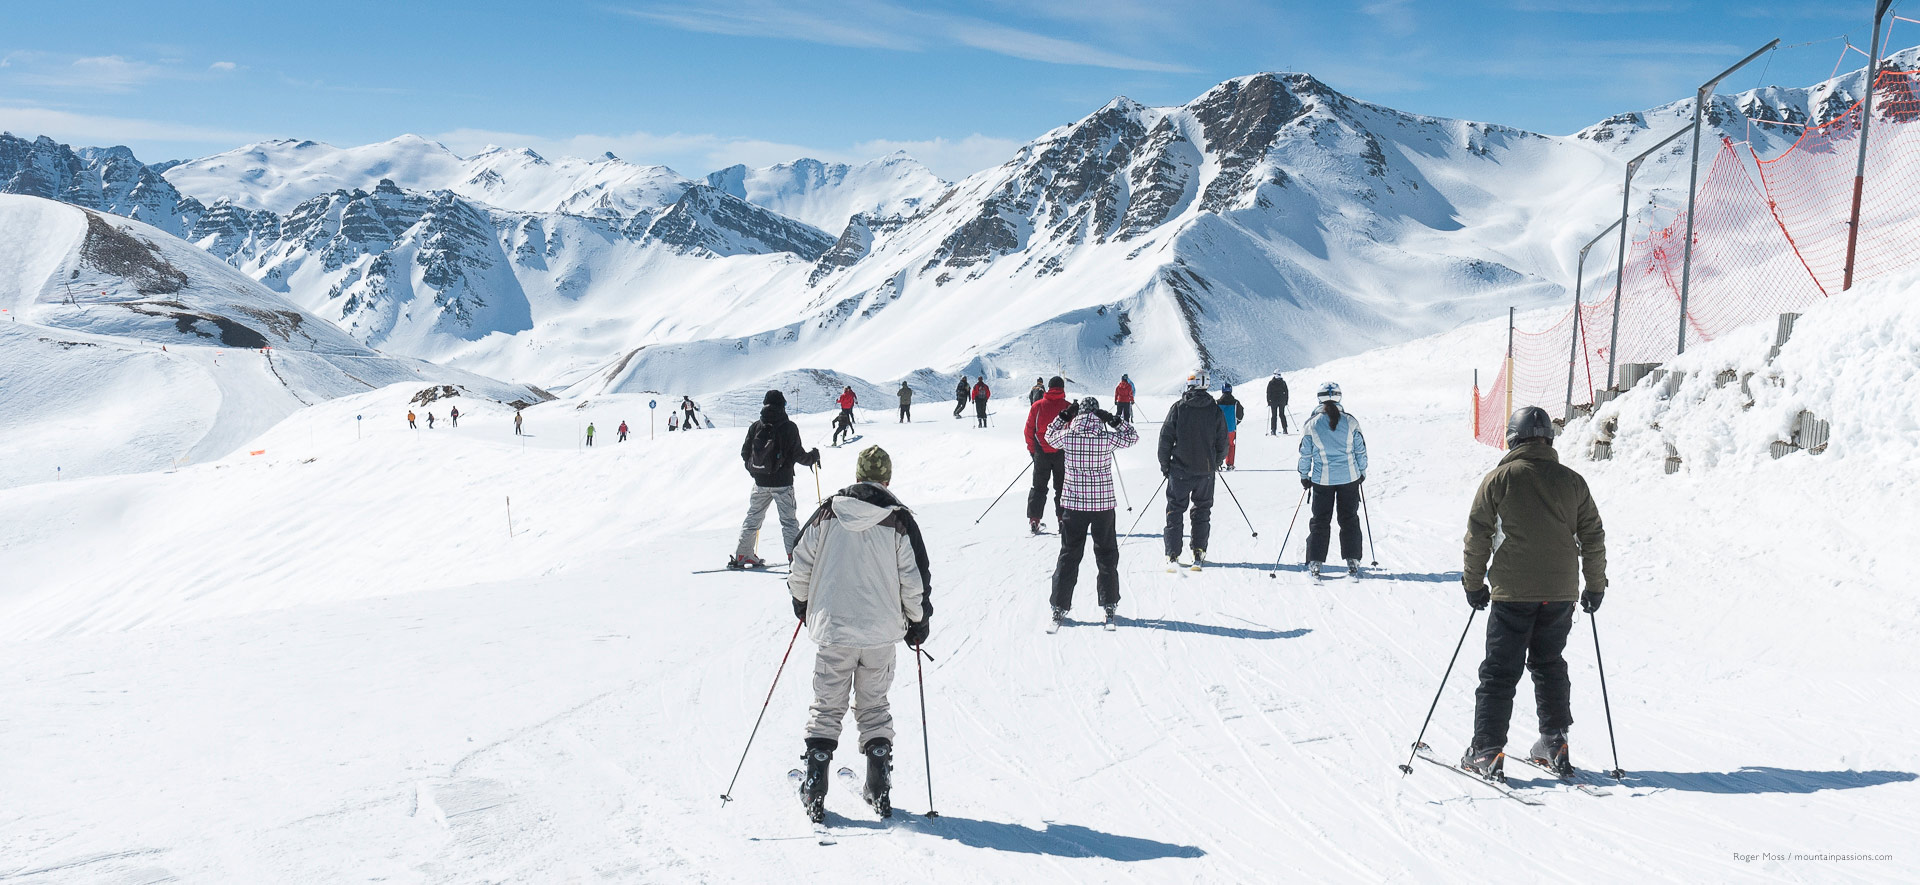 Groups of skiers on wide piste between ski areas